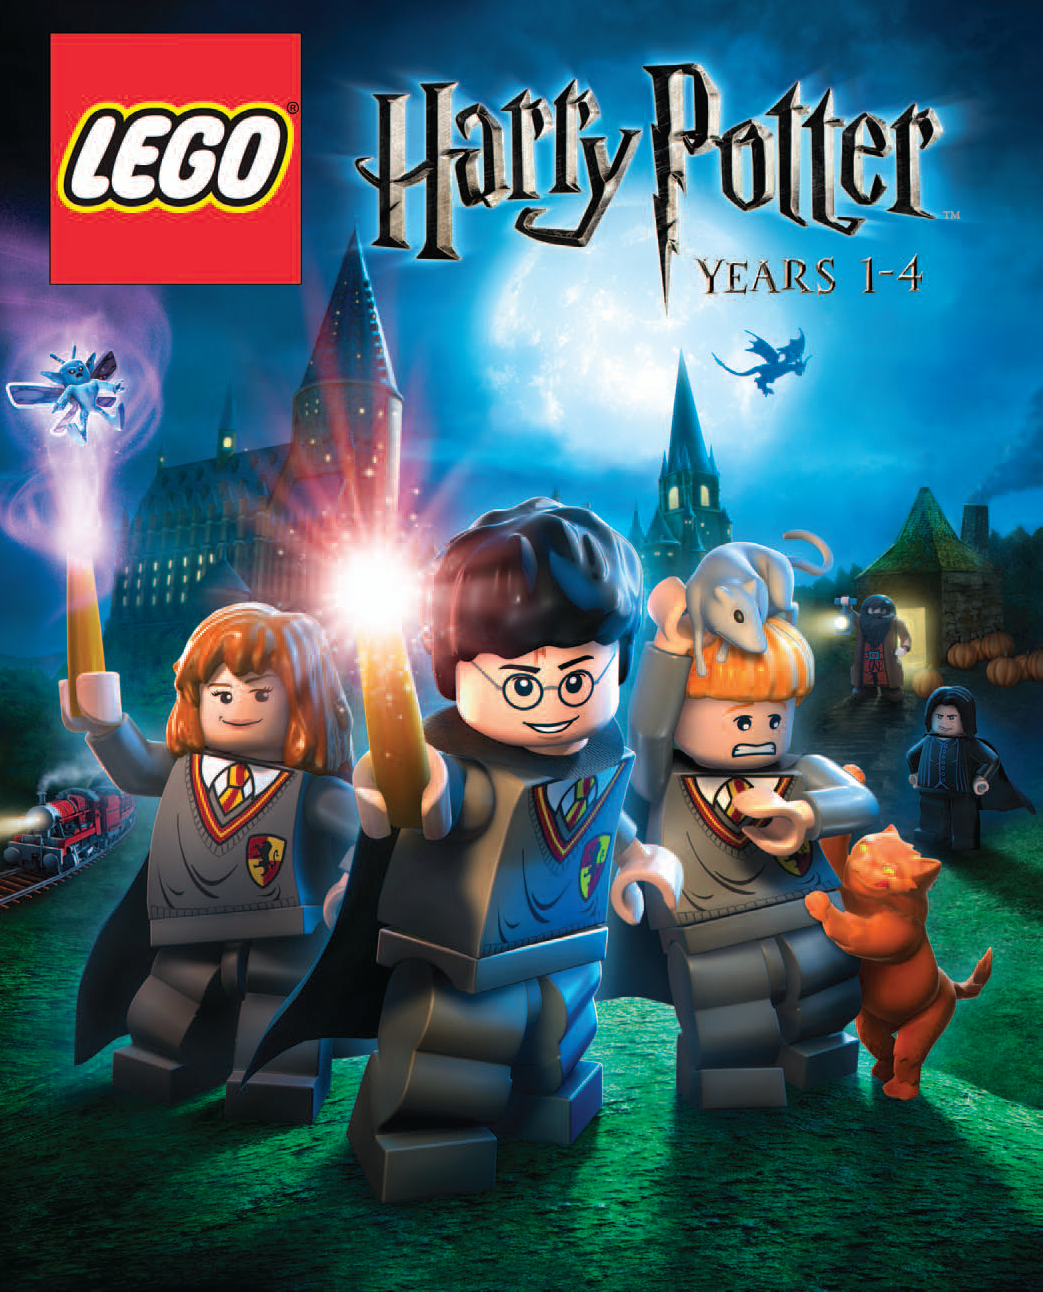 Primary gastric lego harry potter years 1 4 between